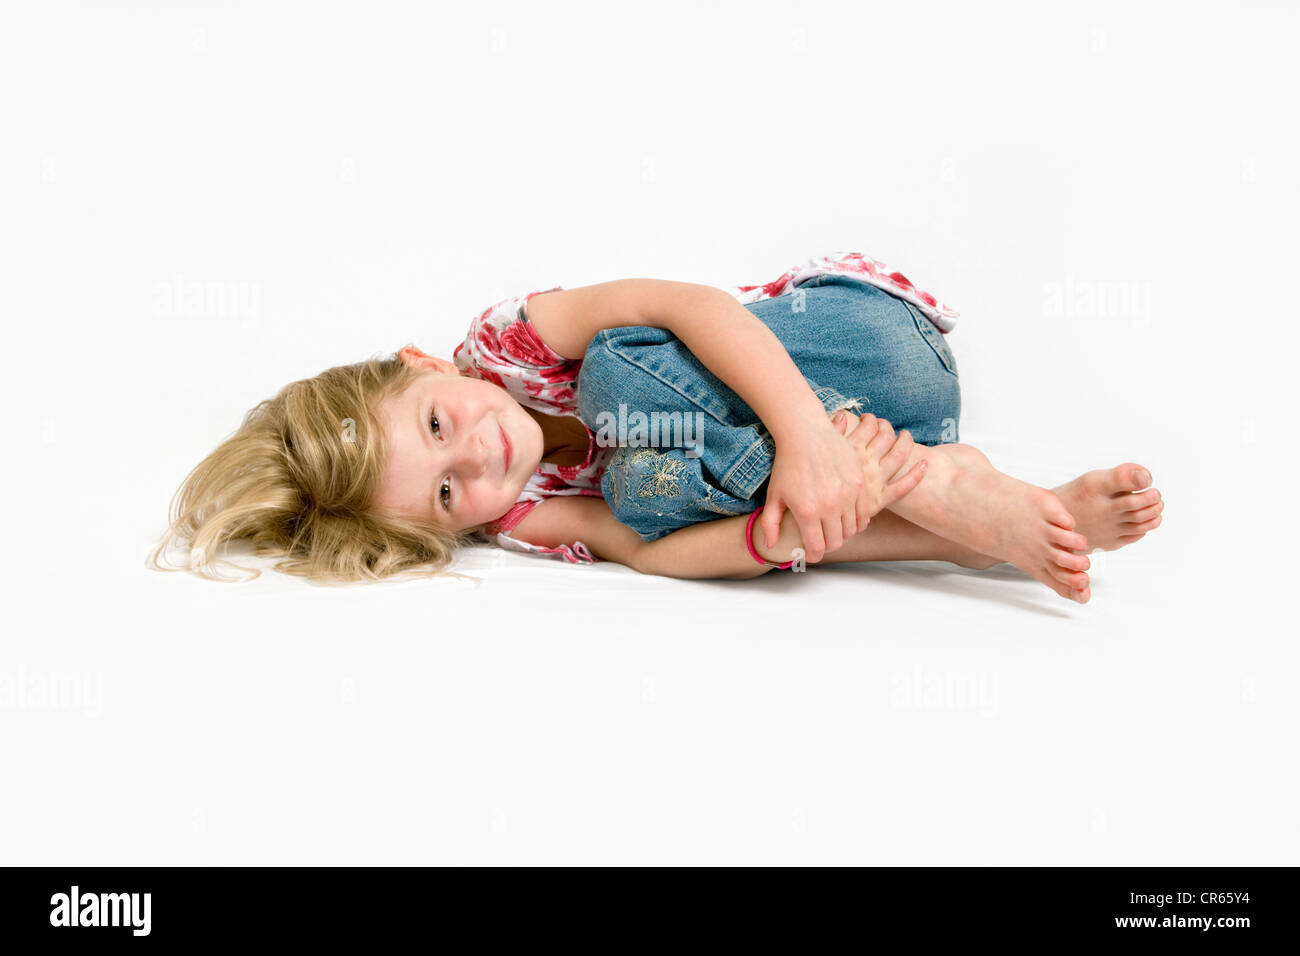 Studio image of Caucasian 7 year old curled up on a white background with a happy expression on her face - Stock Image